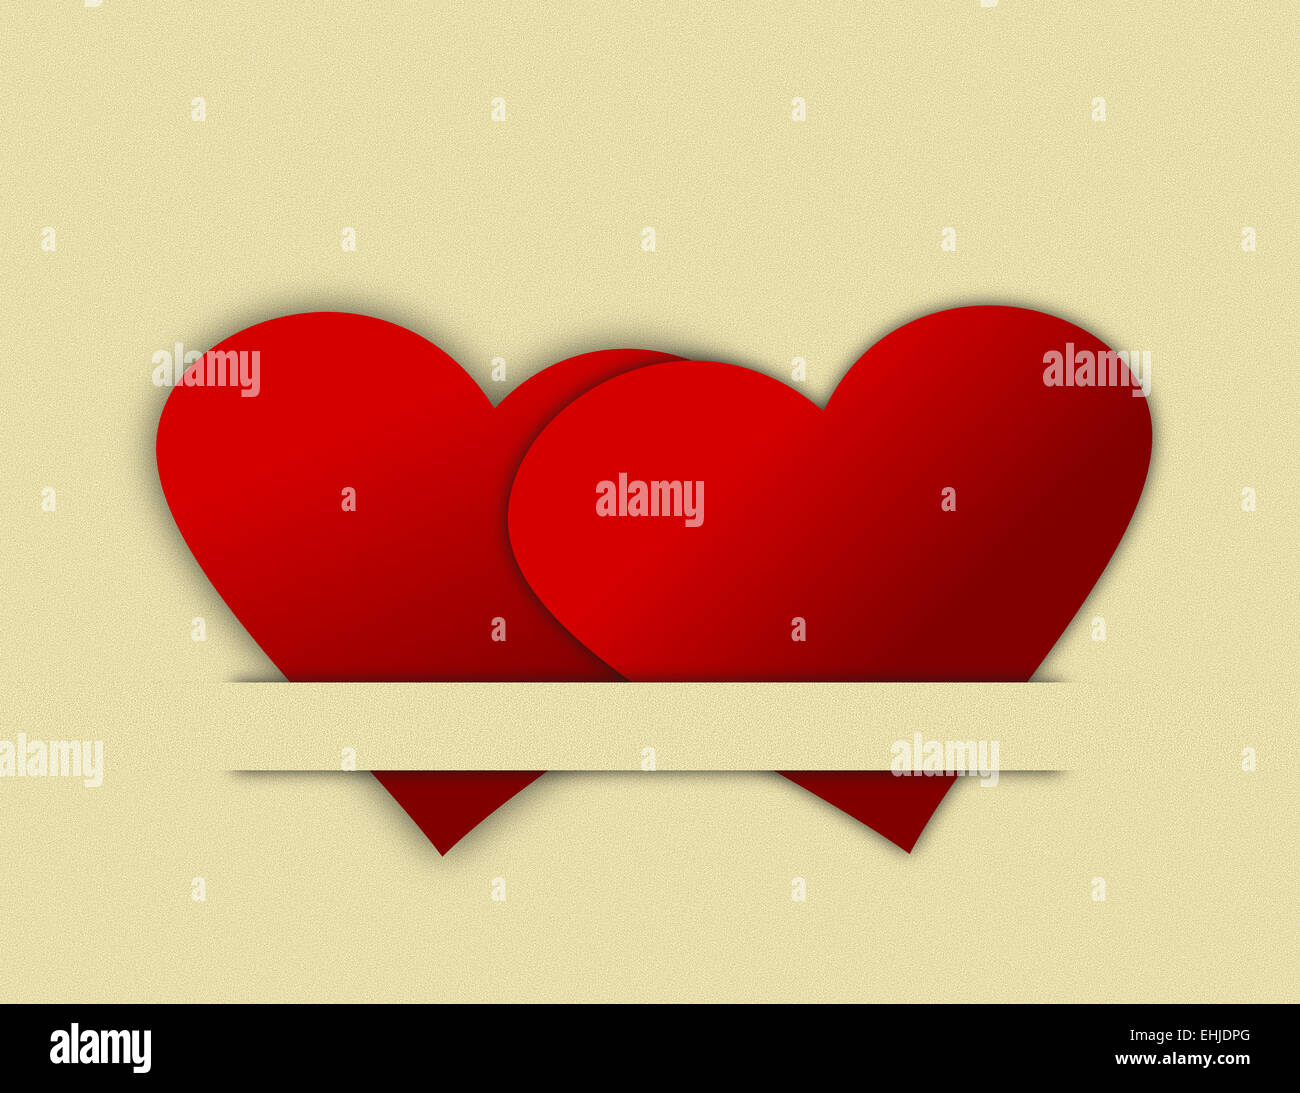 Heart Cutouts Tucked Together - Stock Image